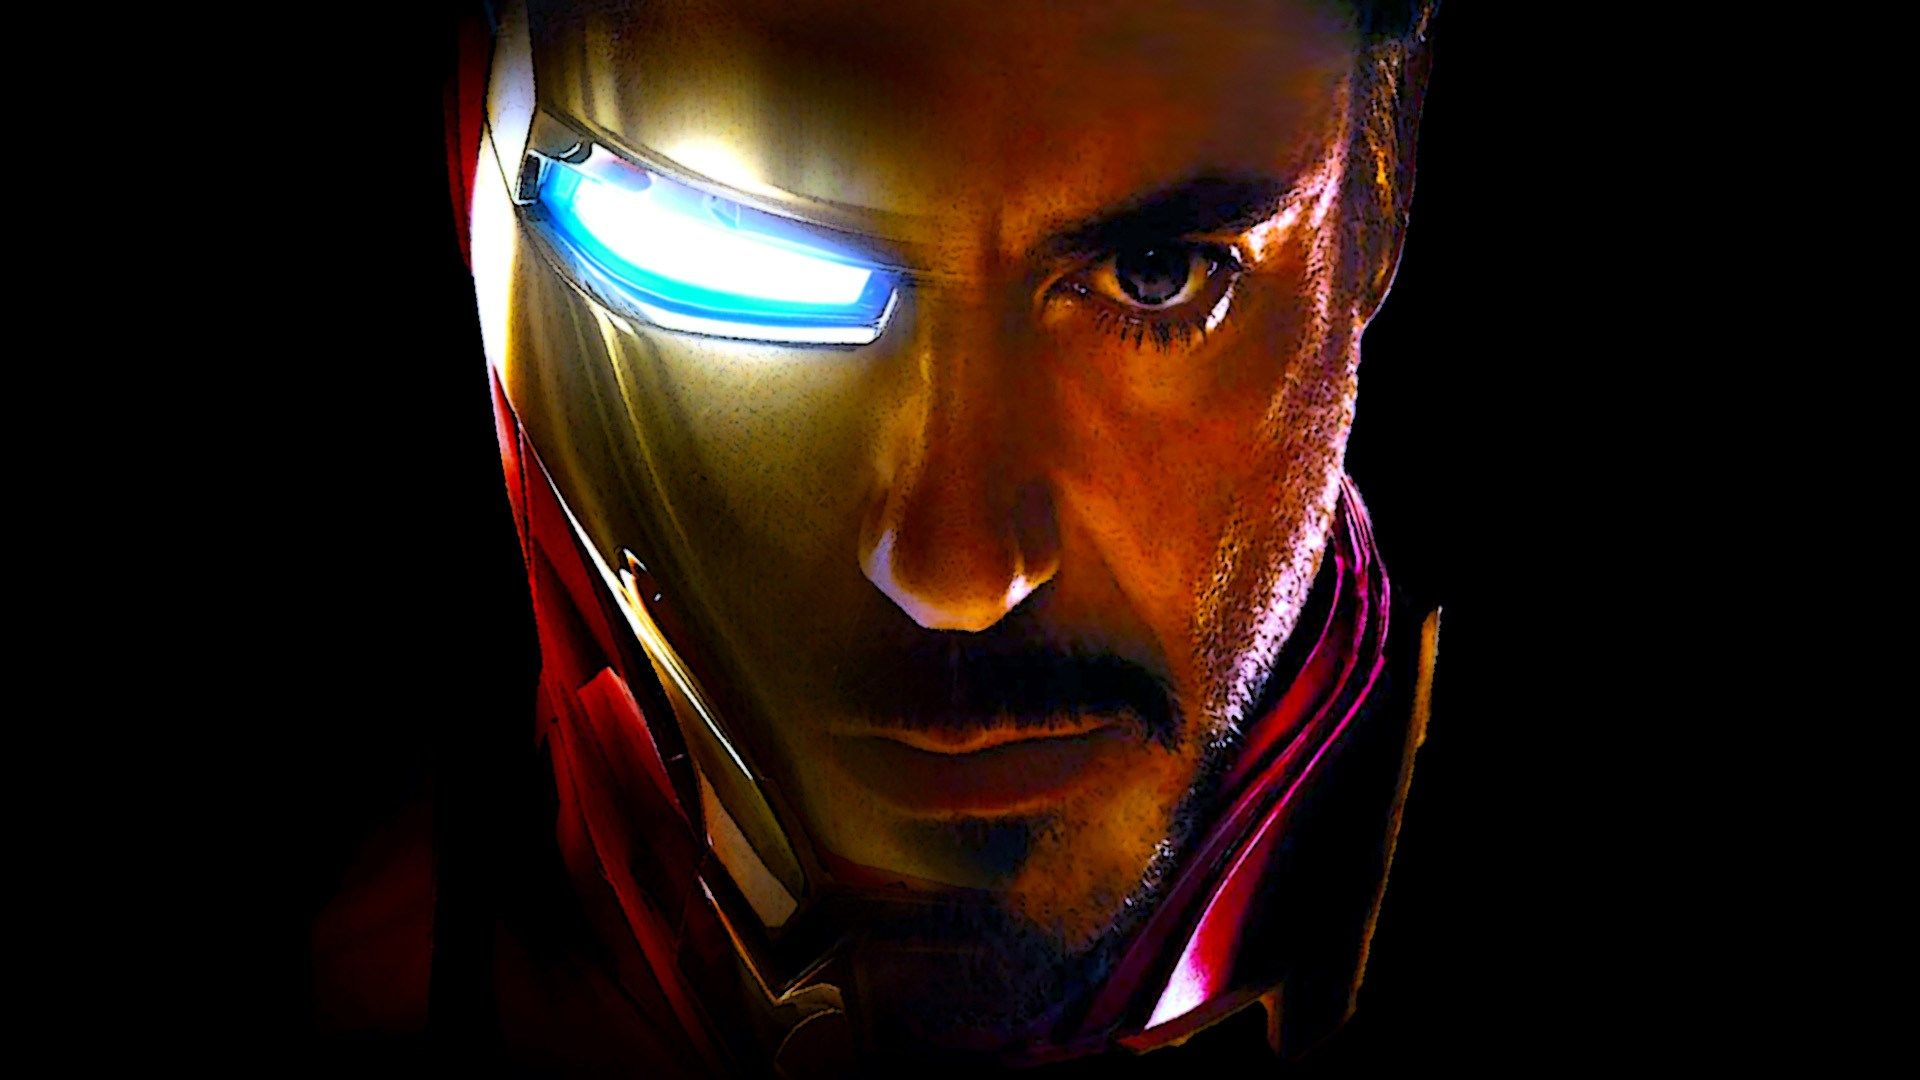 iron man backgrounds images o oshenka by seotuning